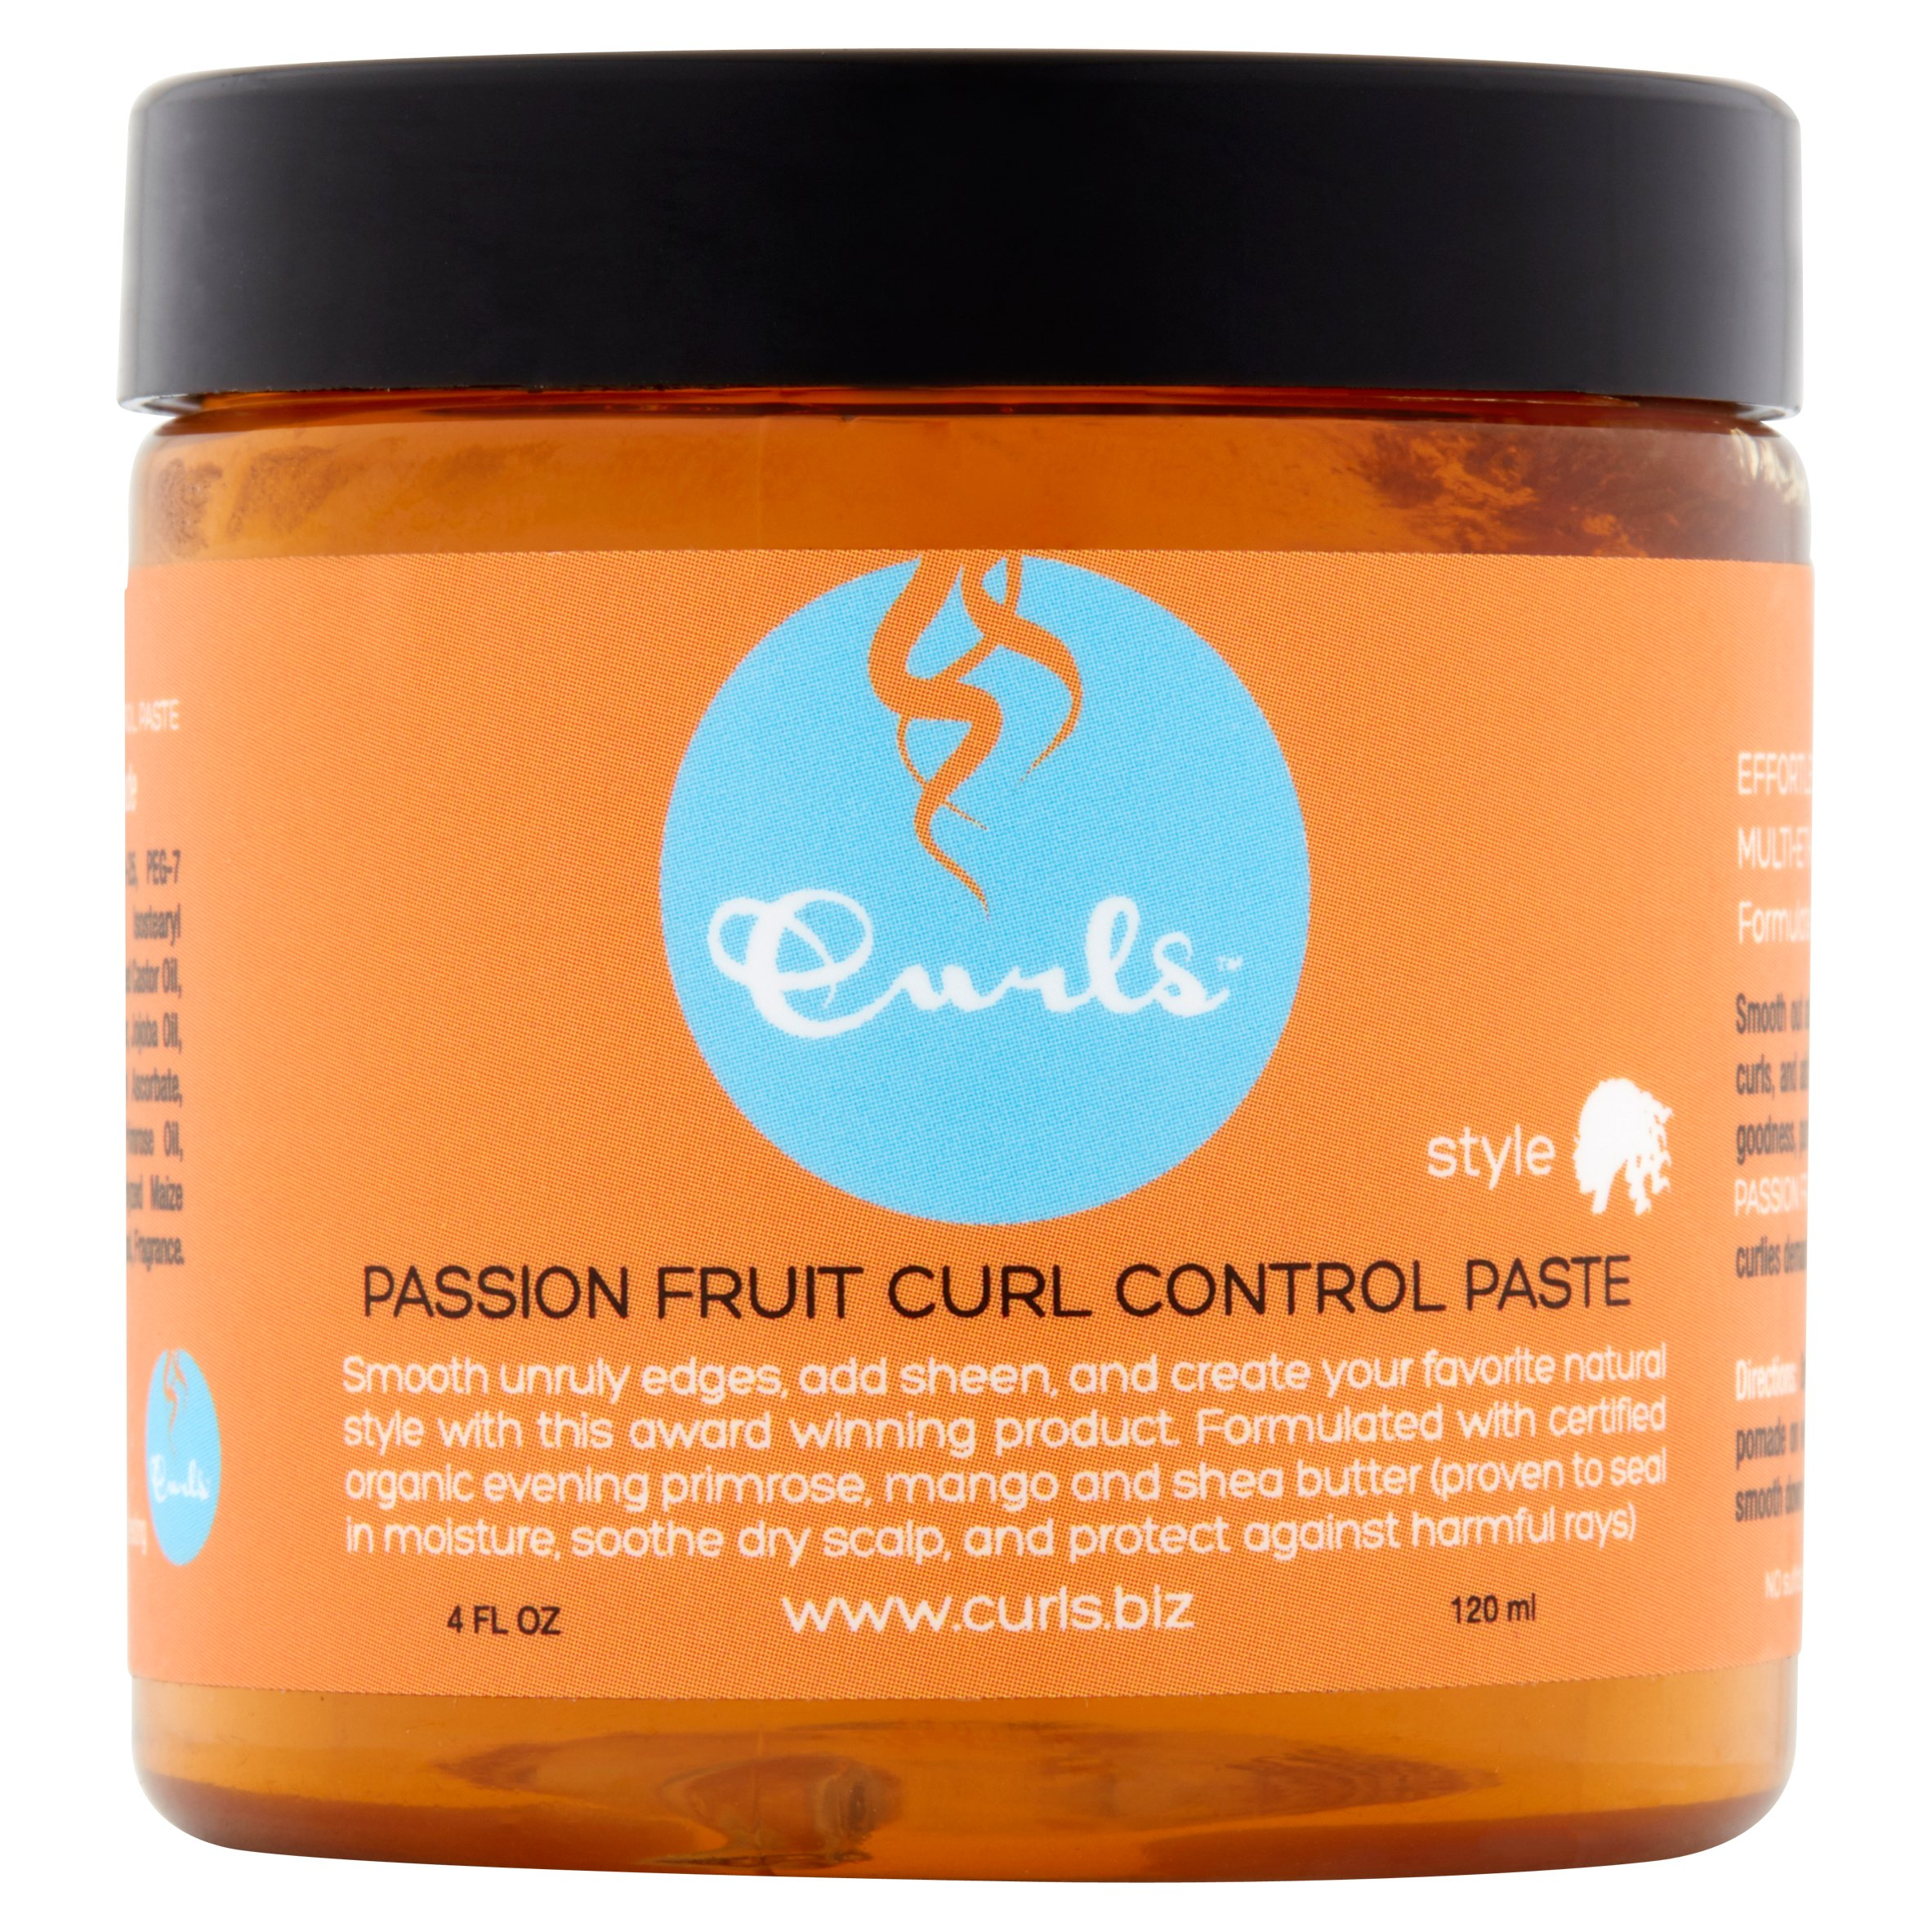 Curls Passion Fruit Curl Control Paste, 4 fl oz